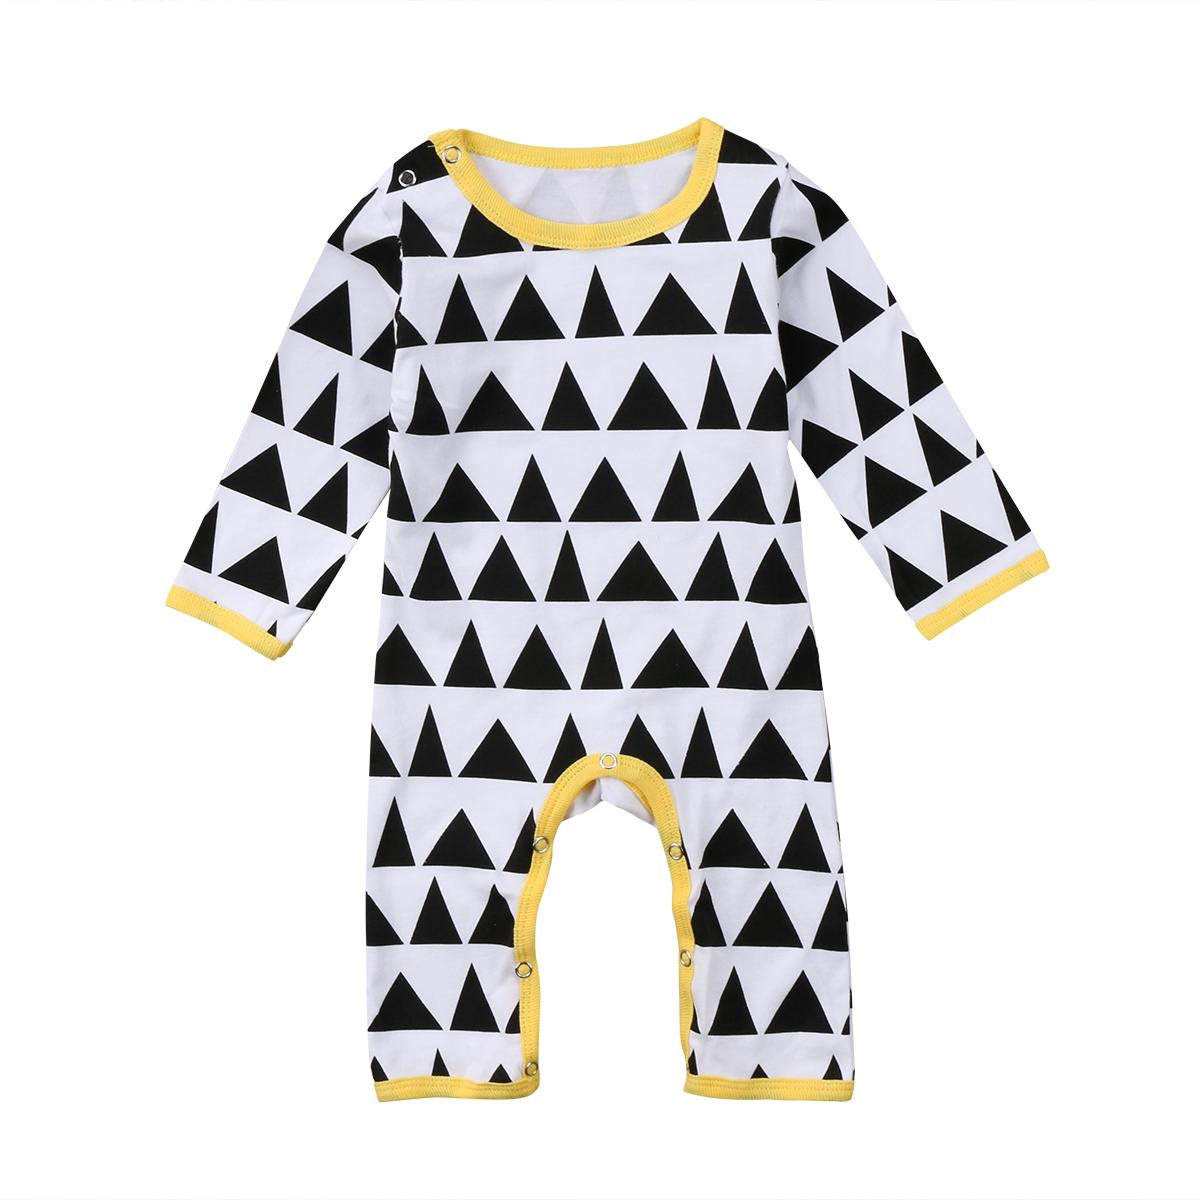 Infant Kids Baby Boy Girl Triangle Tops Clothes Jumpsuit Romper Playsuit Outfit Casual Fashion Long Sleeve Cotton Clothing